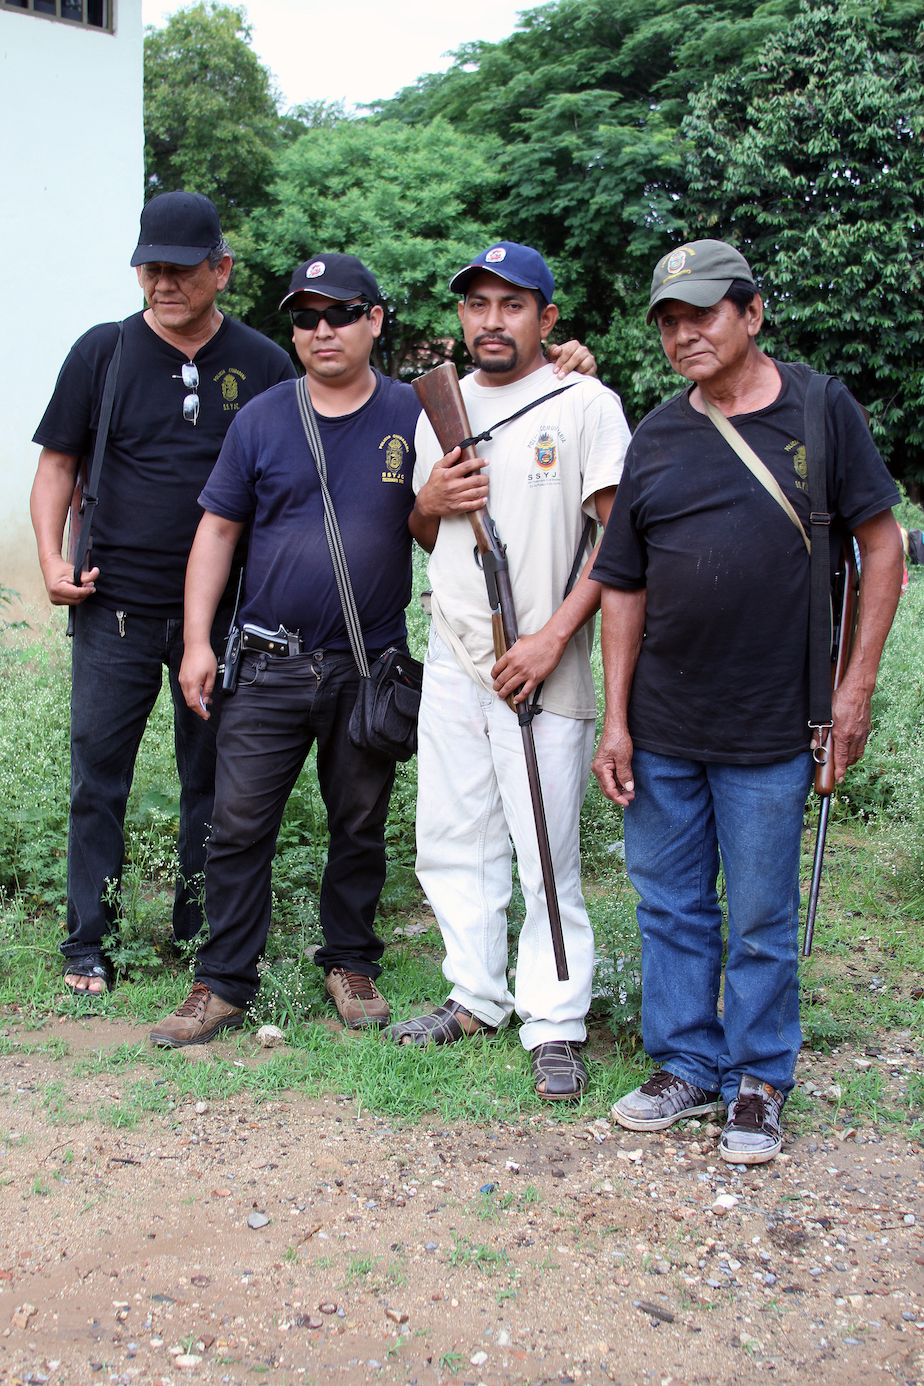 One of the local community self-protection groups organized by Unión de Pueblos y Organizaciones del Estado de Guerrero or the Union of People and Organizations of Guerrero.